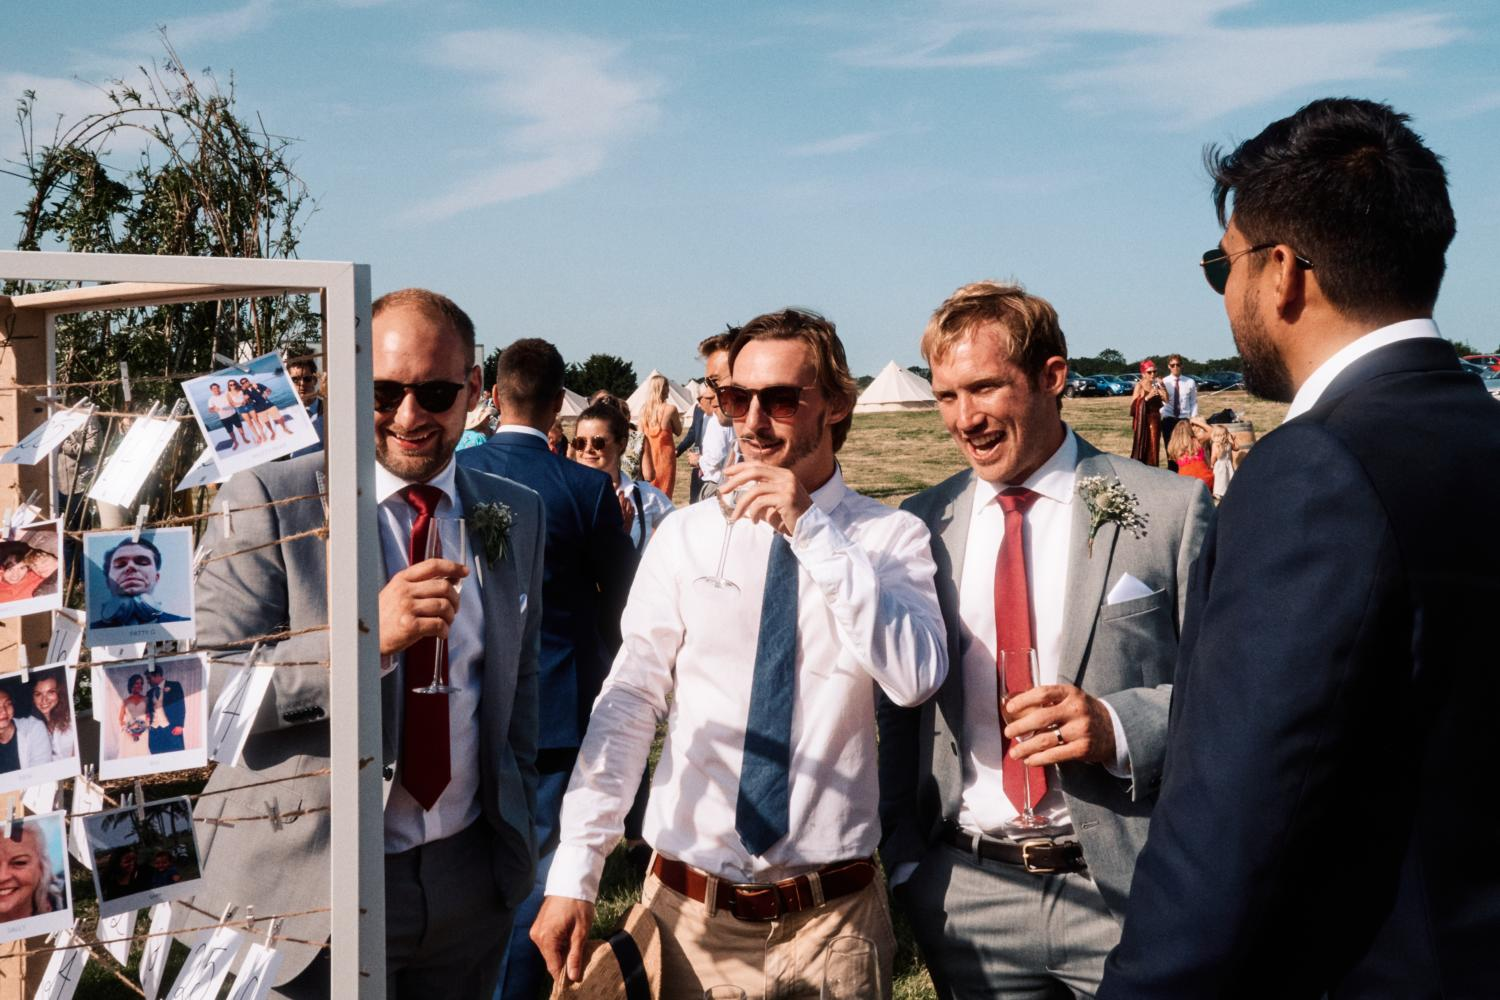 Groomsmen laugh and enjoy drinks at an outdoor wedding reception